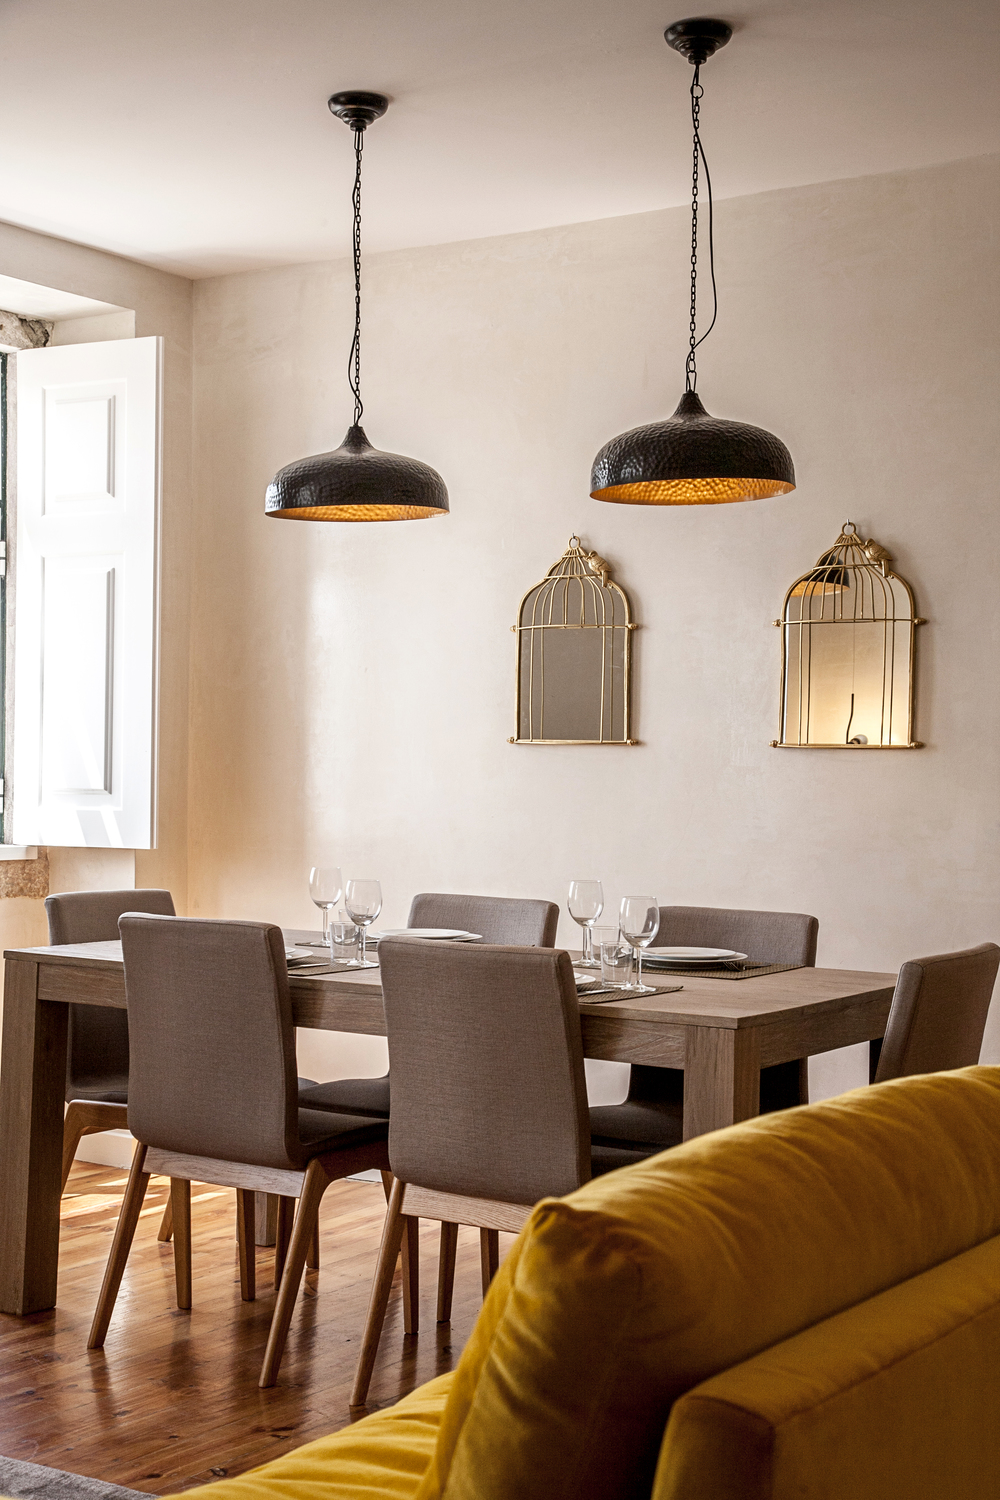 18 Dinning room for 6 persons.JPG